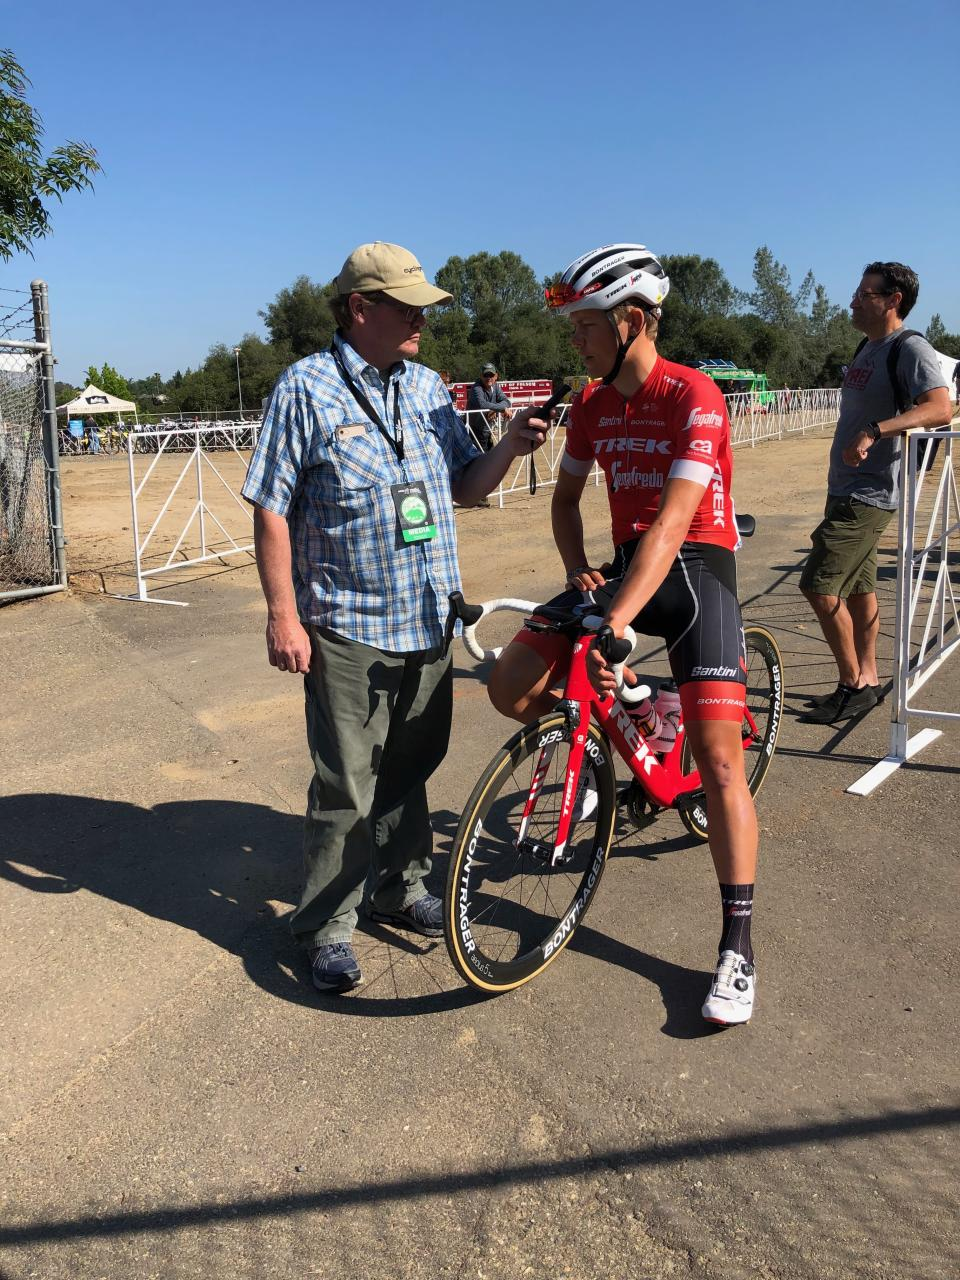 Toms Skujins is interviewed at 2018 Amgen Tour of California